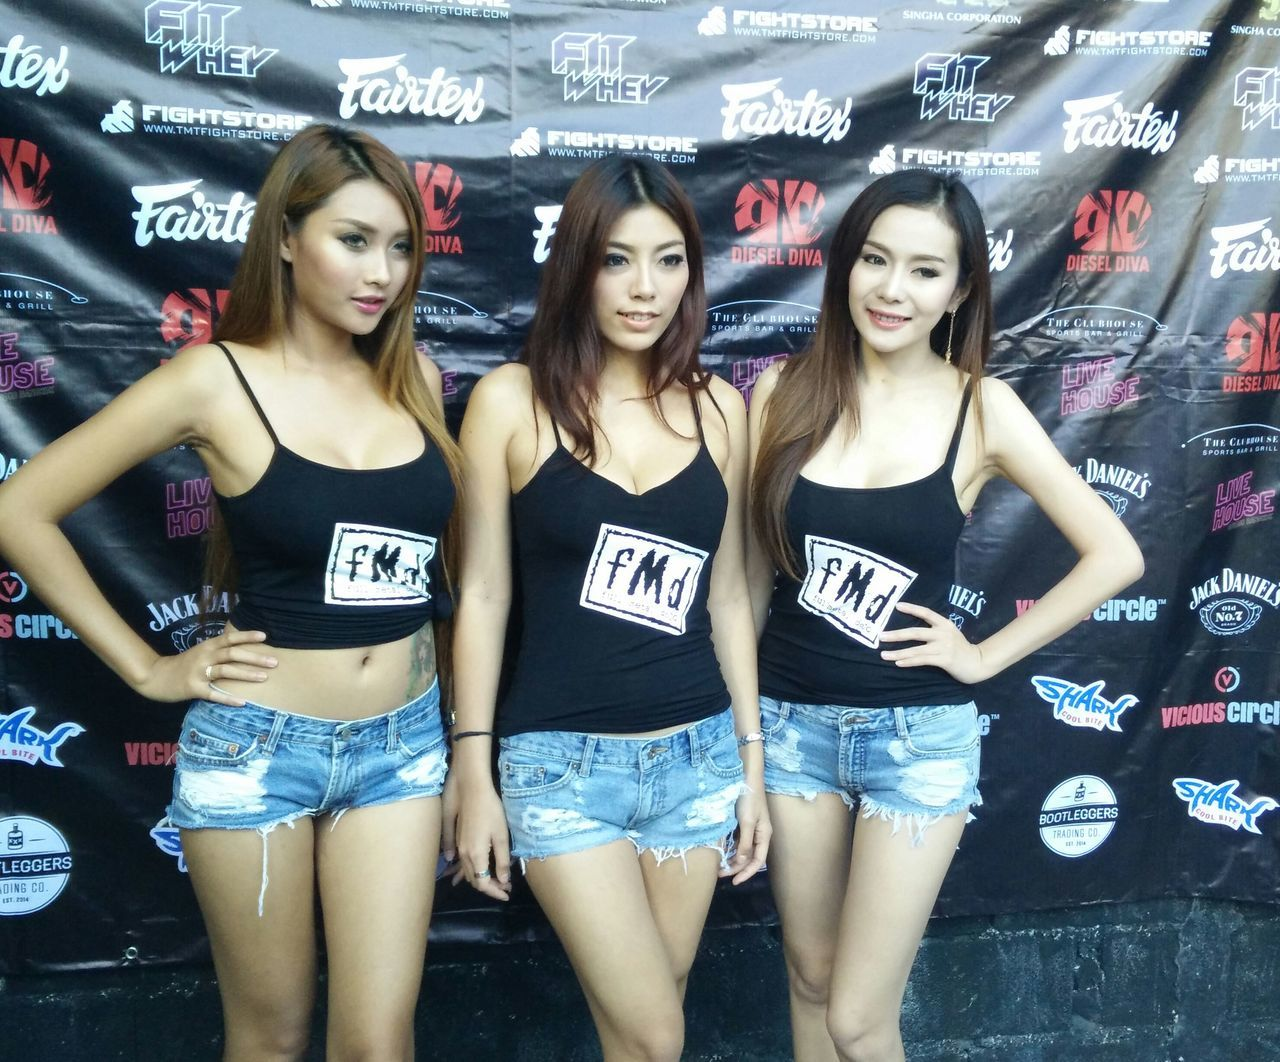 Gangsters Paradise Bangkok Thailand Boxing Ring Girl♡ Sexygirl SexyAsFuck Traveling Travel Hello World Sexy♡